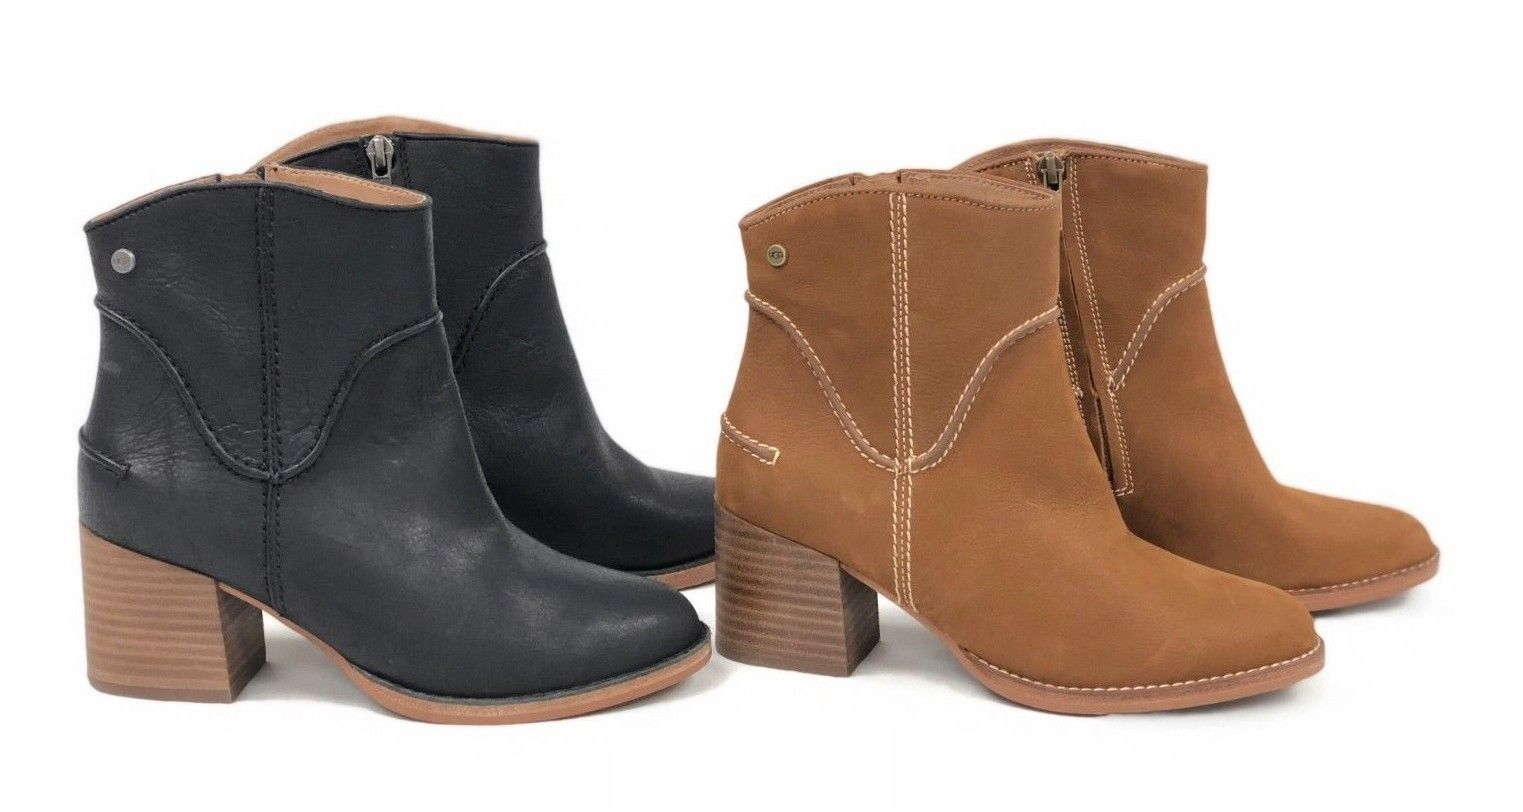 d8bdd6f8815 Ugg Australia Annie Bootie Chestnut or Black and 50 similar items